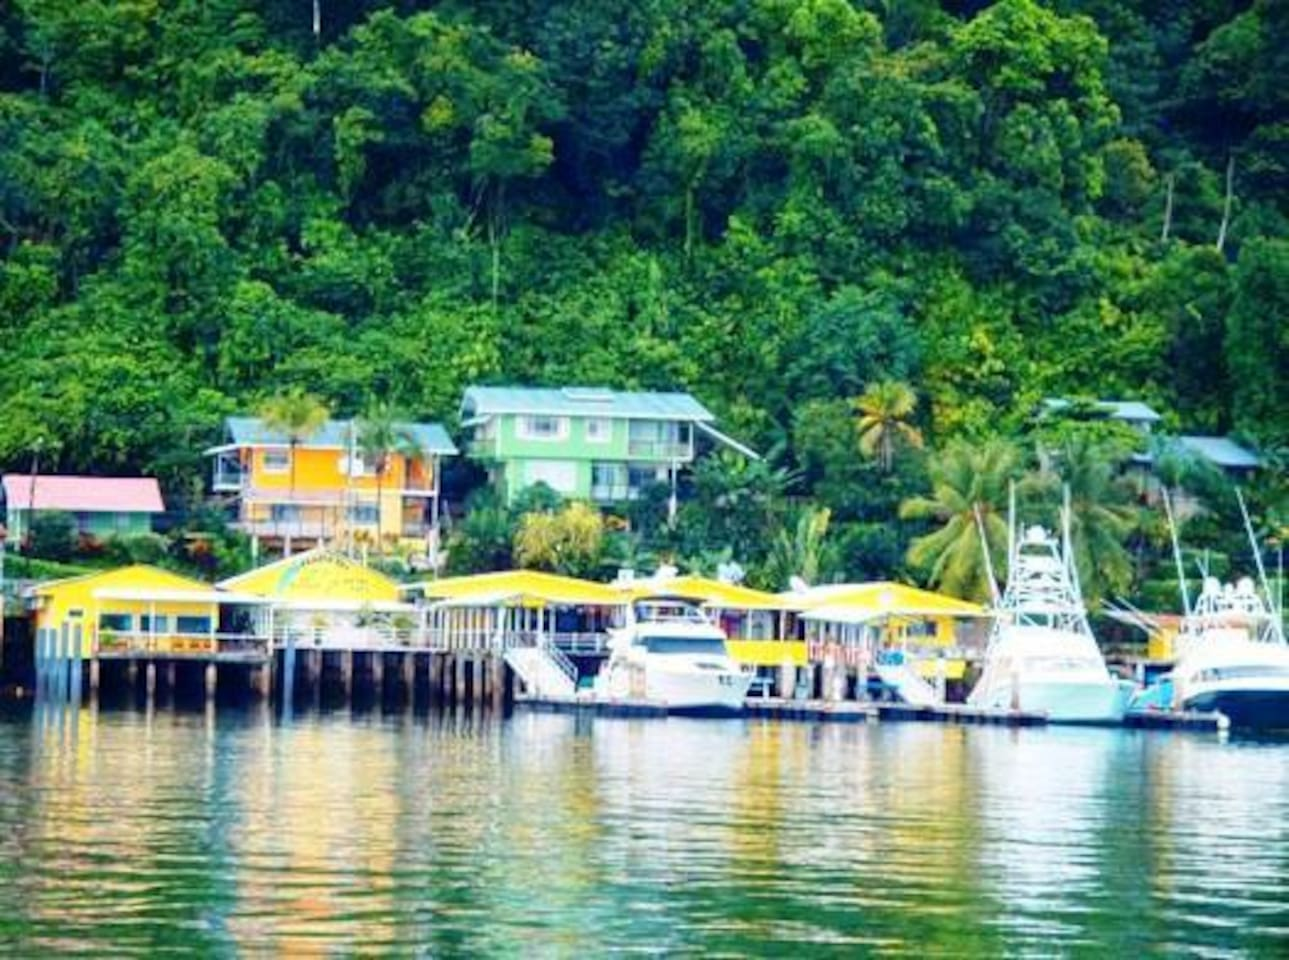 Vista Villas from the water - Located on the hillside across from the yellow Banana Bay Marinas waterfront Bar and Restaurant